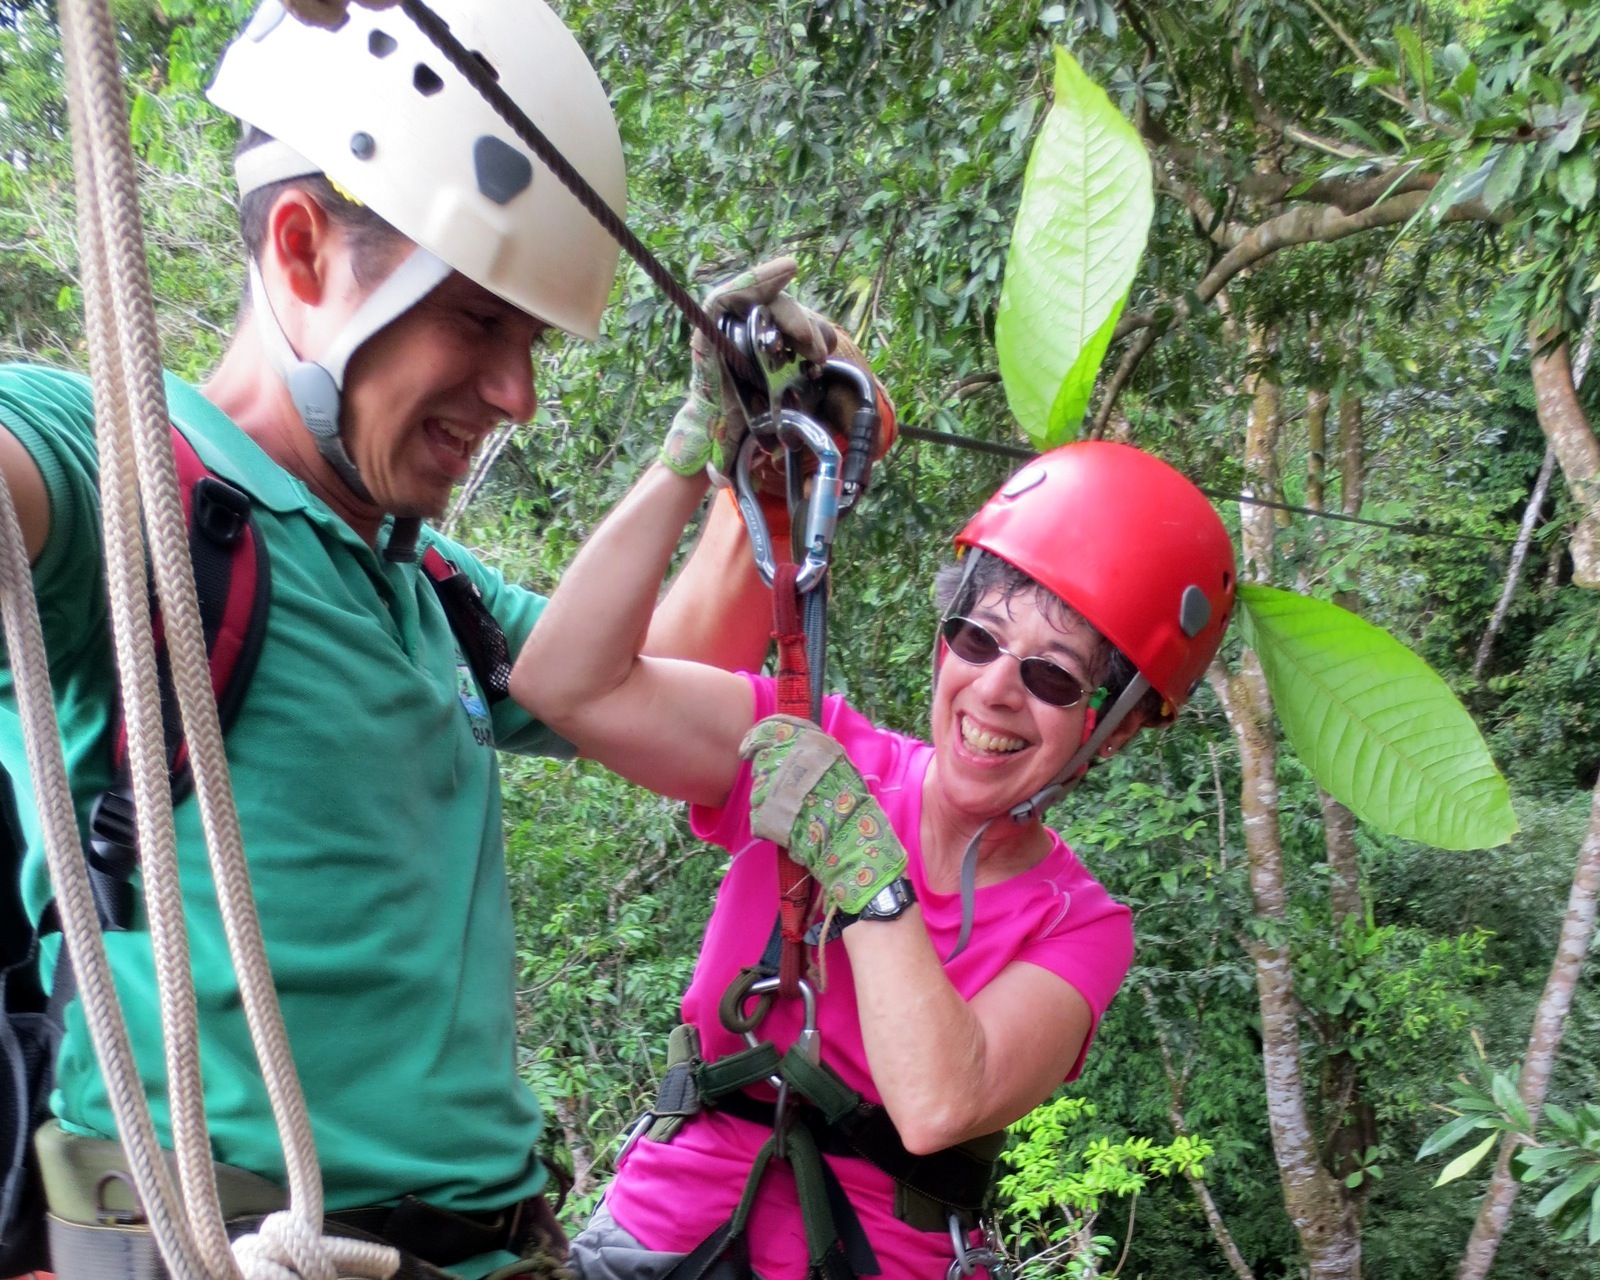 Woman gets ready to ride a zipline with help from a guide.